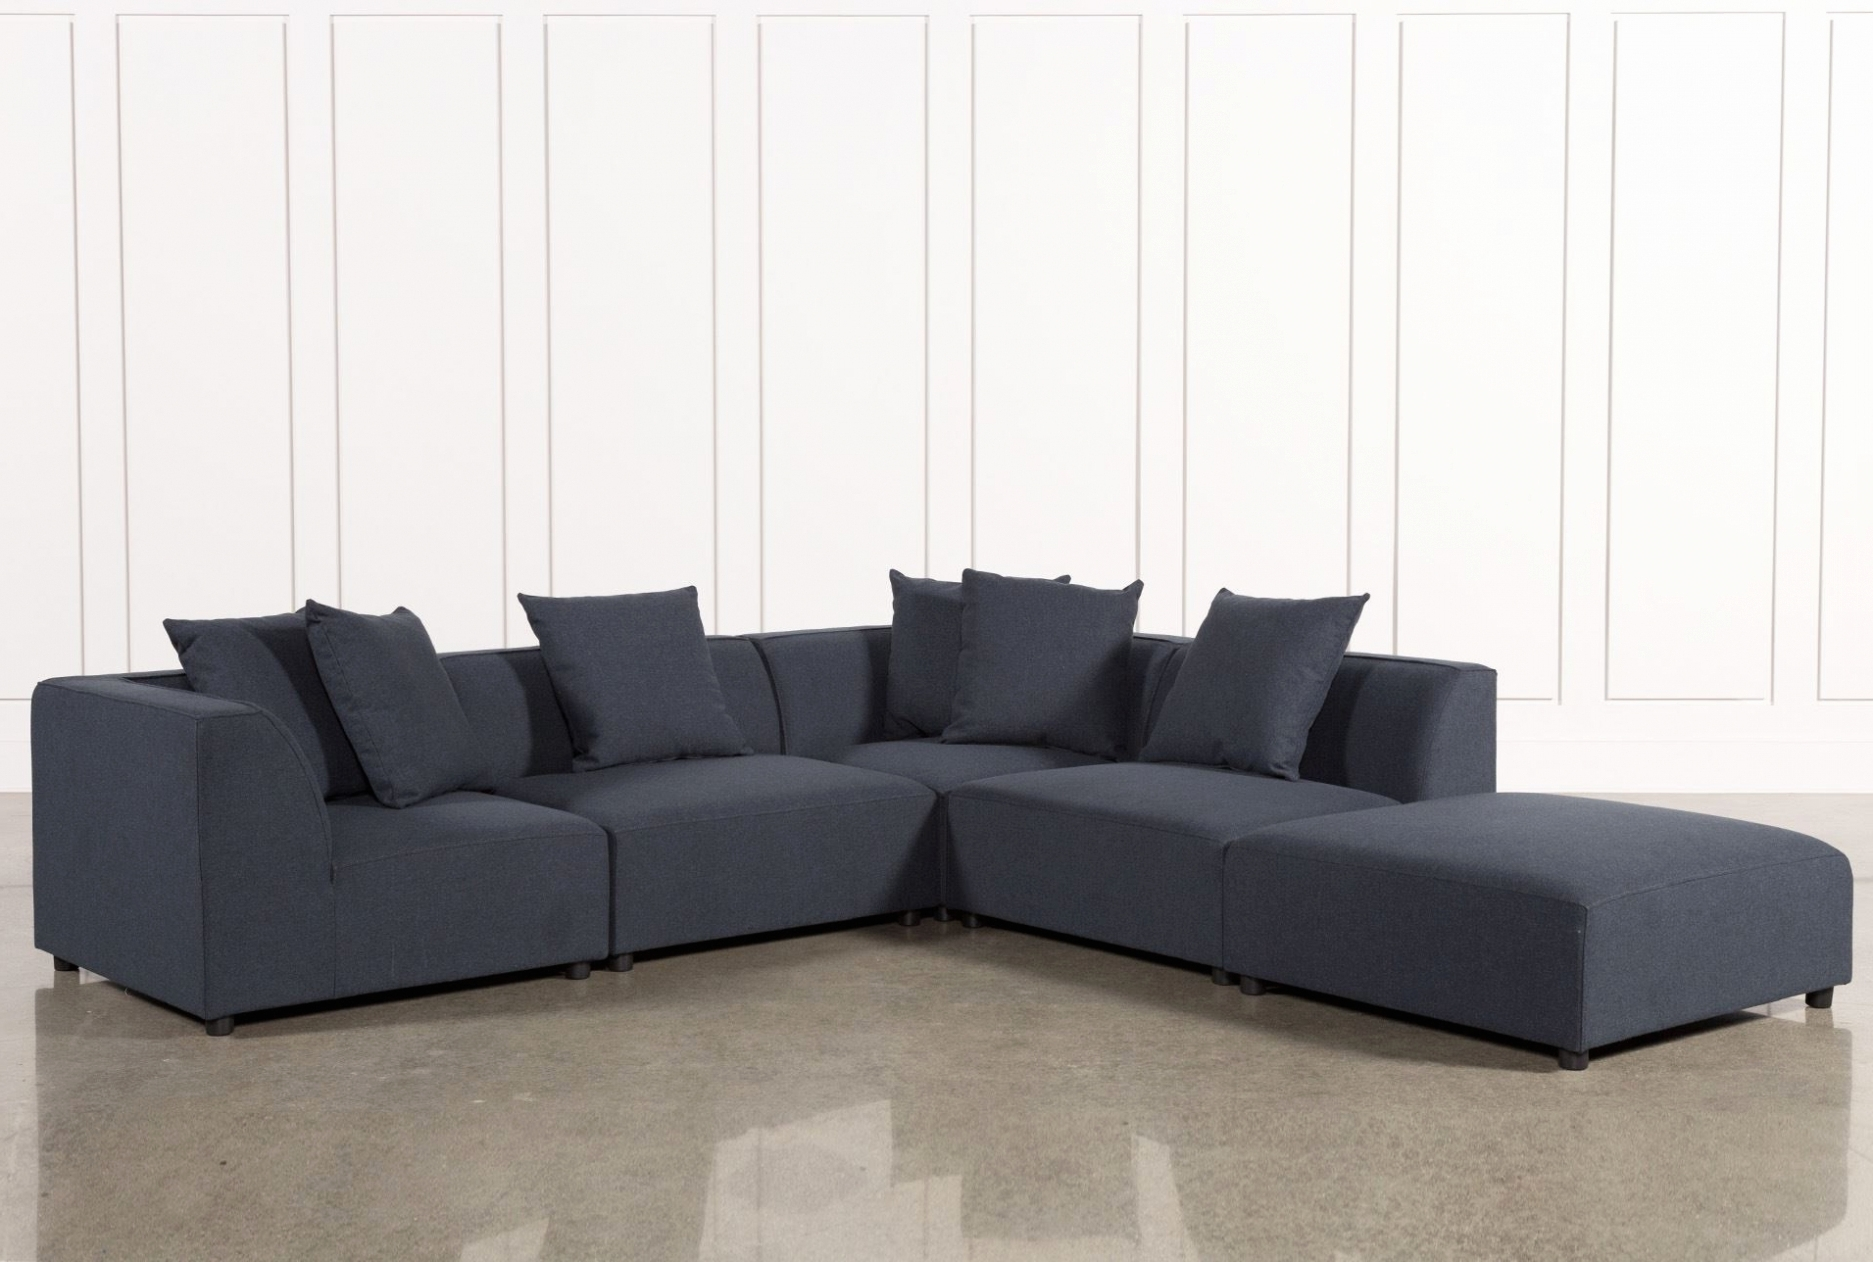 Living Spaces Sectional Sofas With Widely Used Furniture: Lovely 5 Piece Sectional Sofa With Chaise  (View 10 of 20)